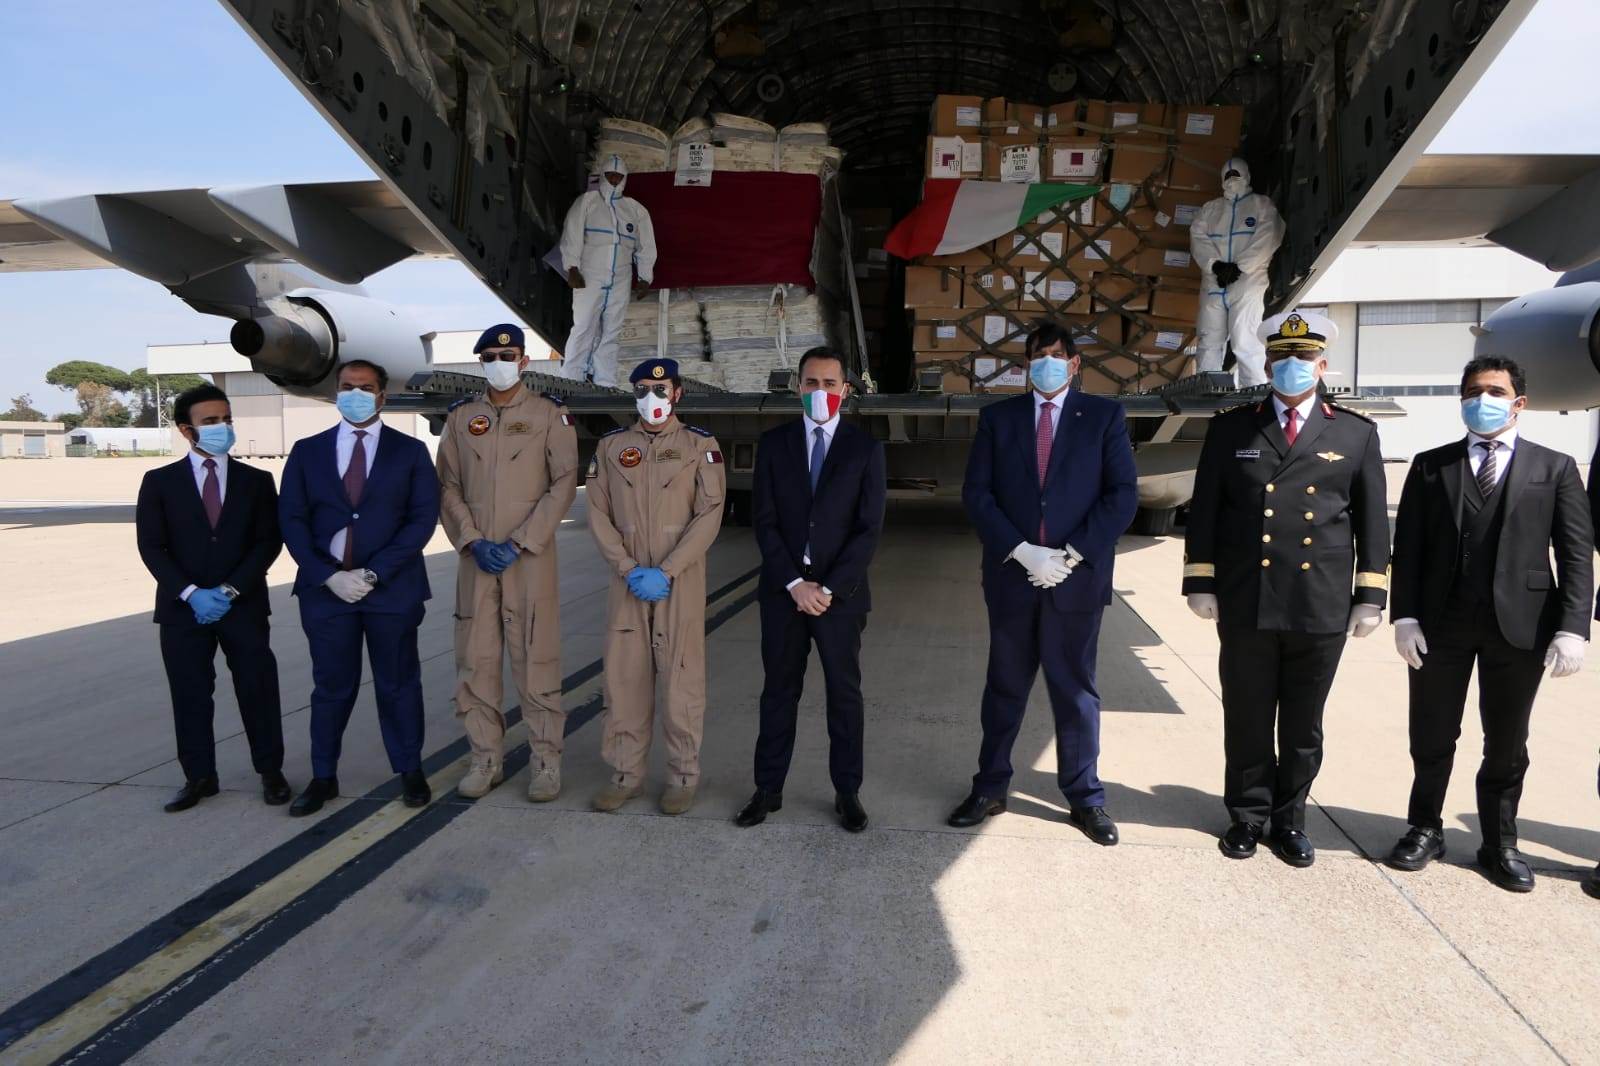 Qatar's Ambassador in Rome: HH the Amir's Directives to Send Medical Aid to Italy Underline Strong Relations